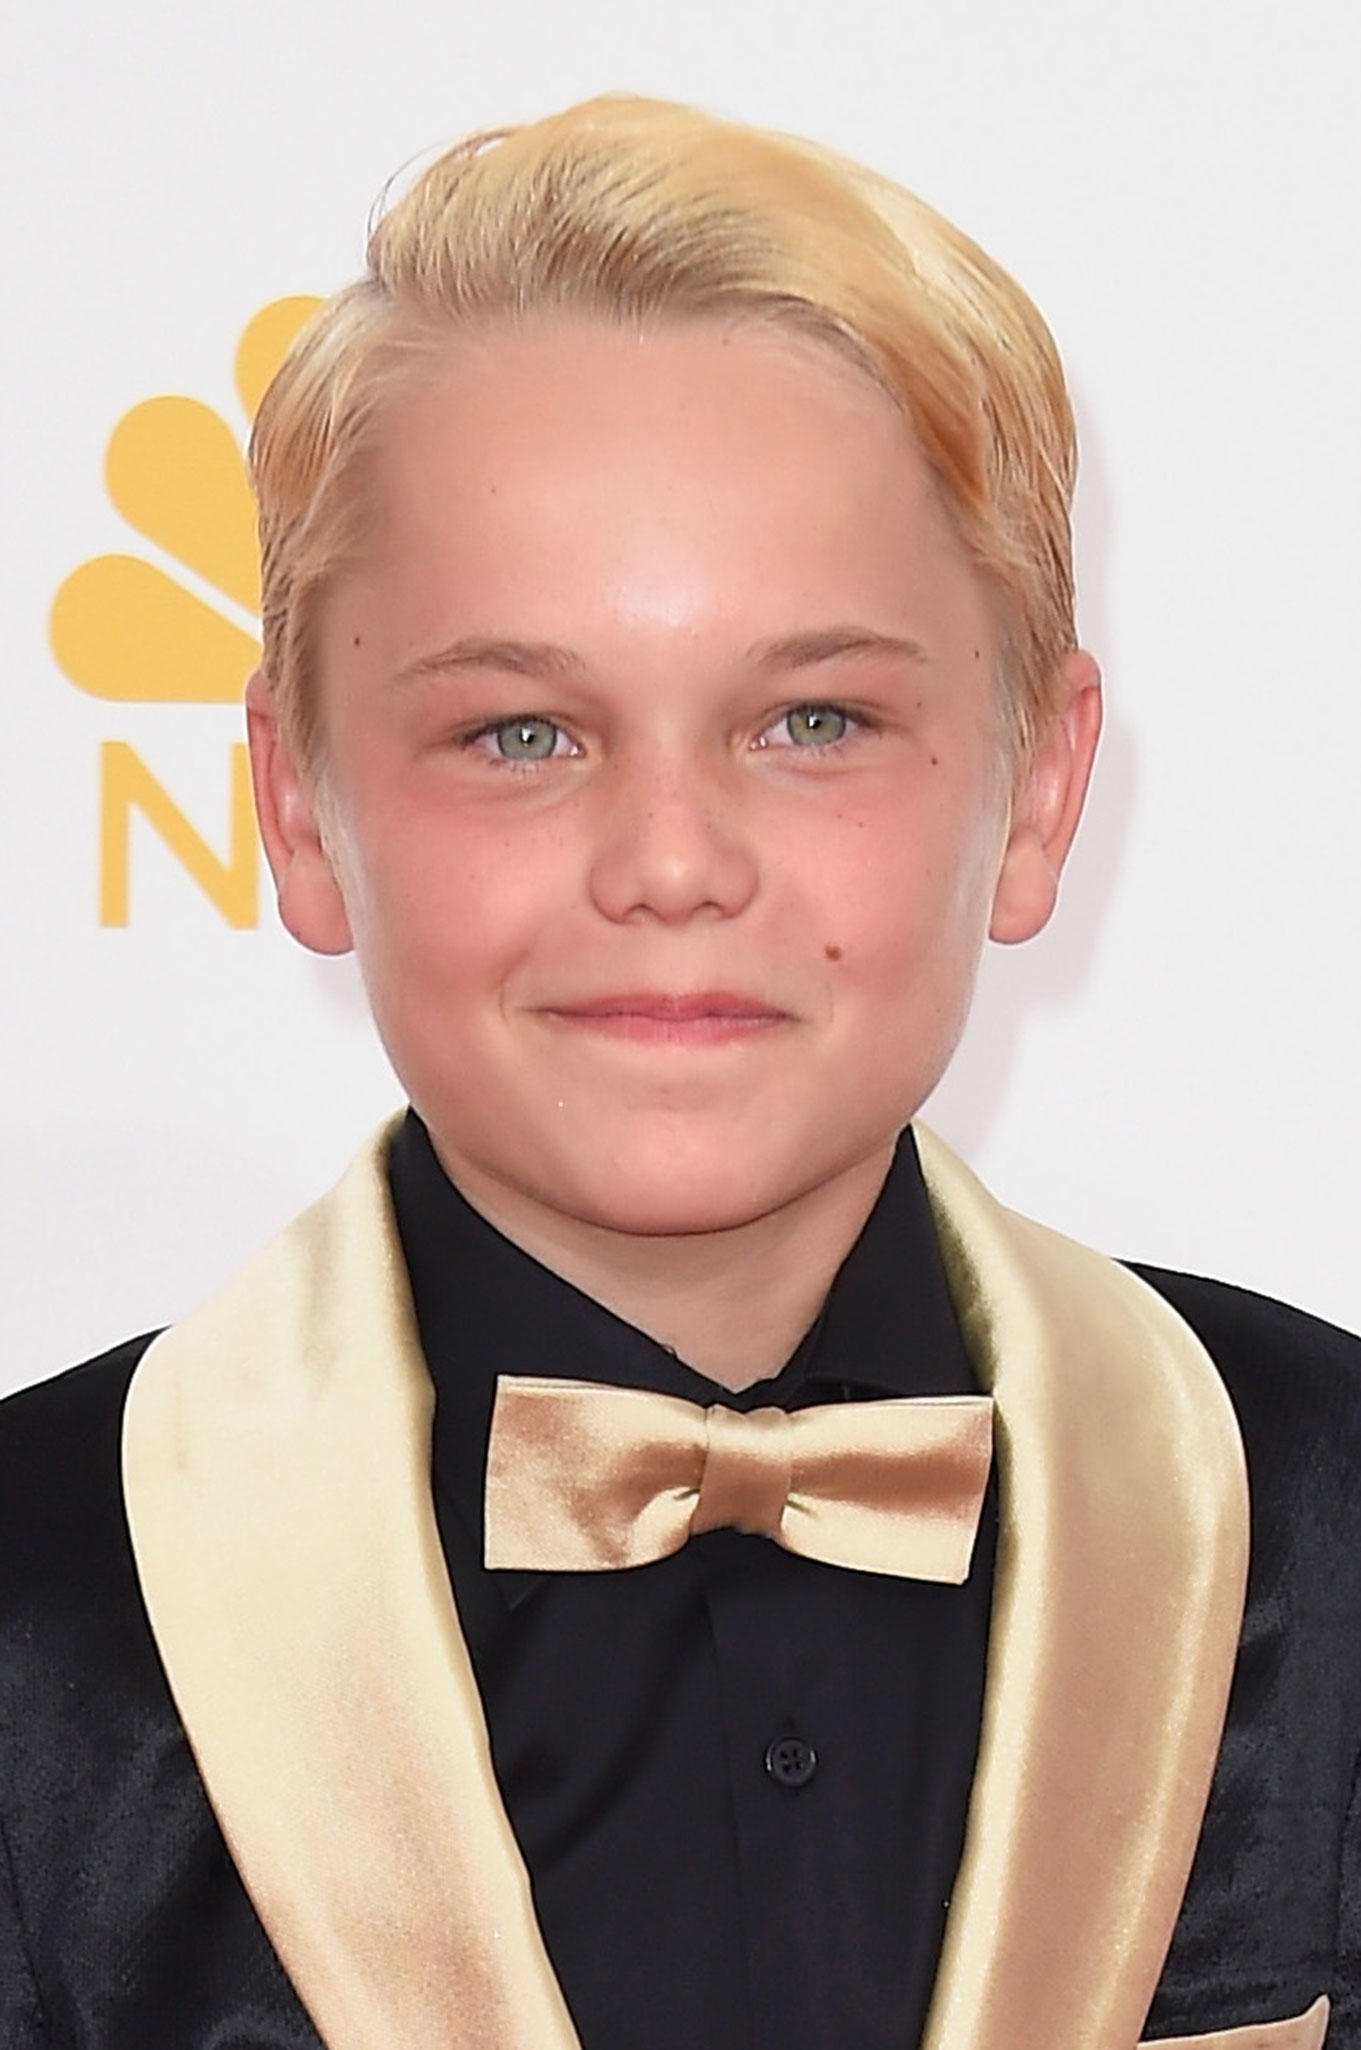 Mason Vale Cotton at the 66th Annual Primetime Emmy Awards.